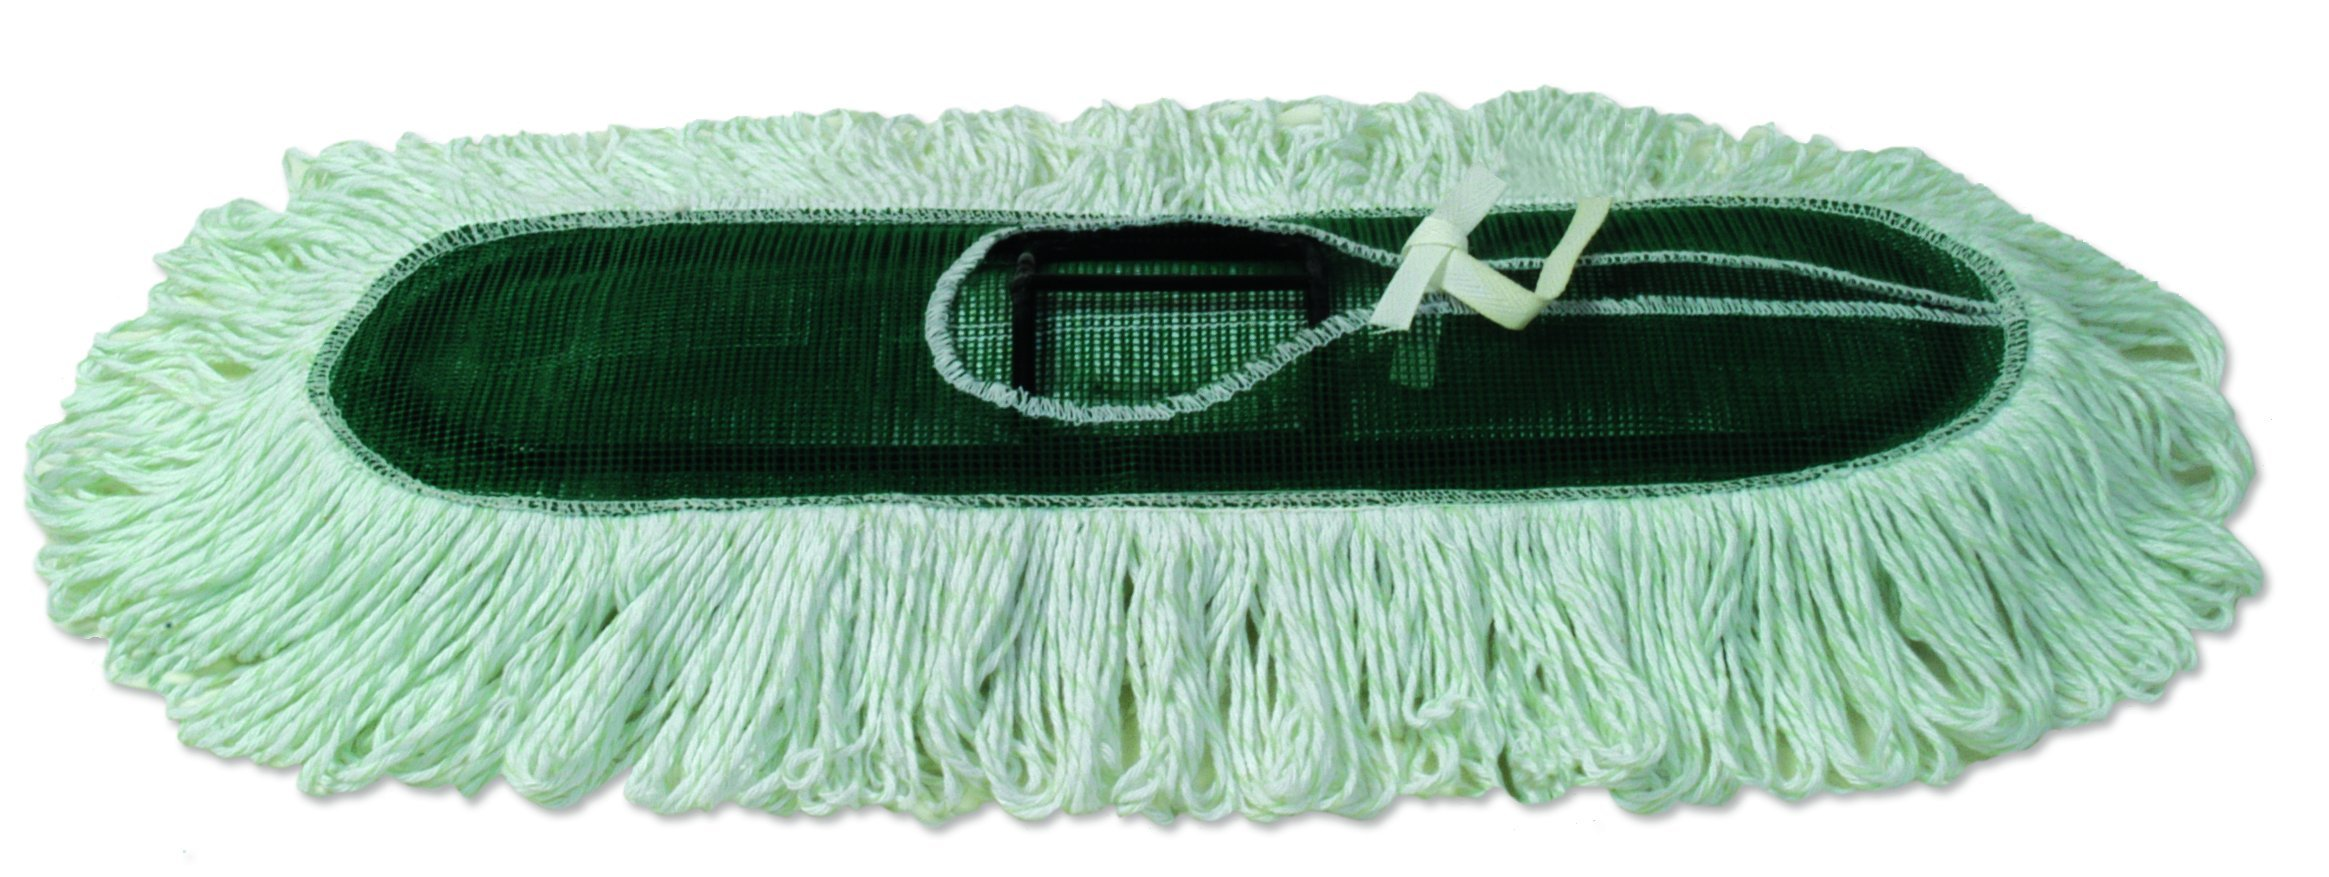 O'Dell FMG185 EchoShine PET Recycled Rayon Flat Finish Mop, 18''  (Case of 12)